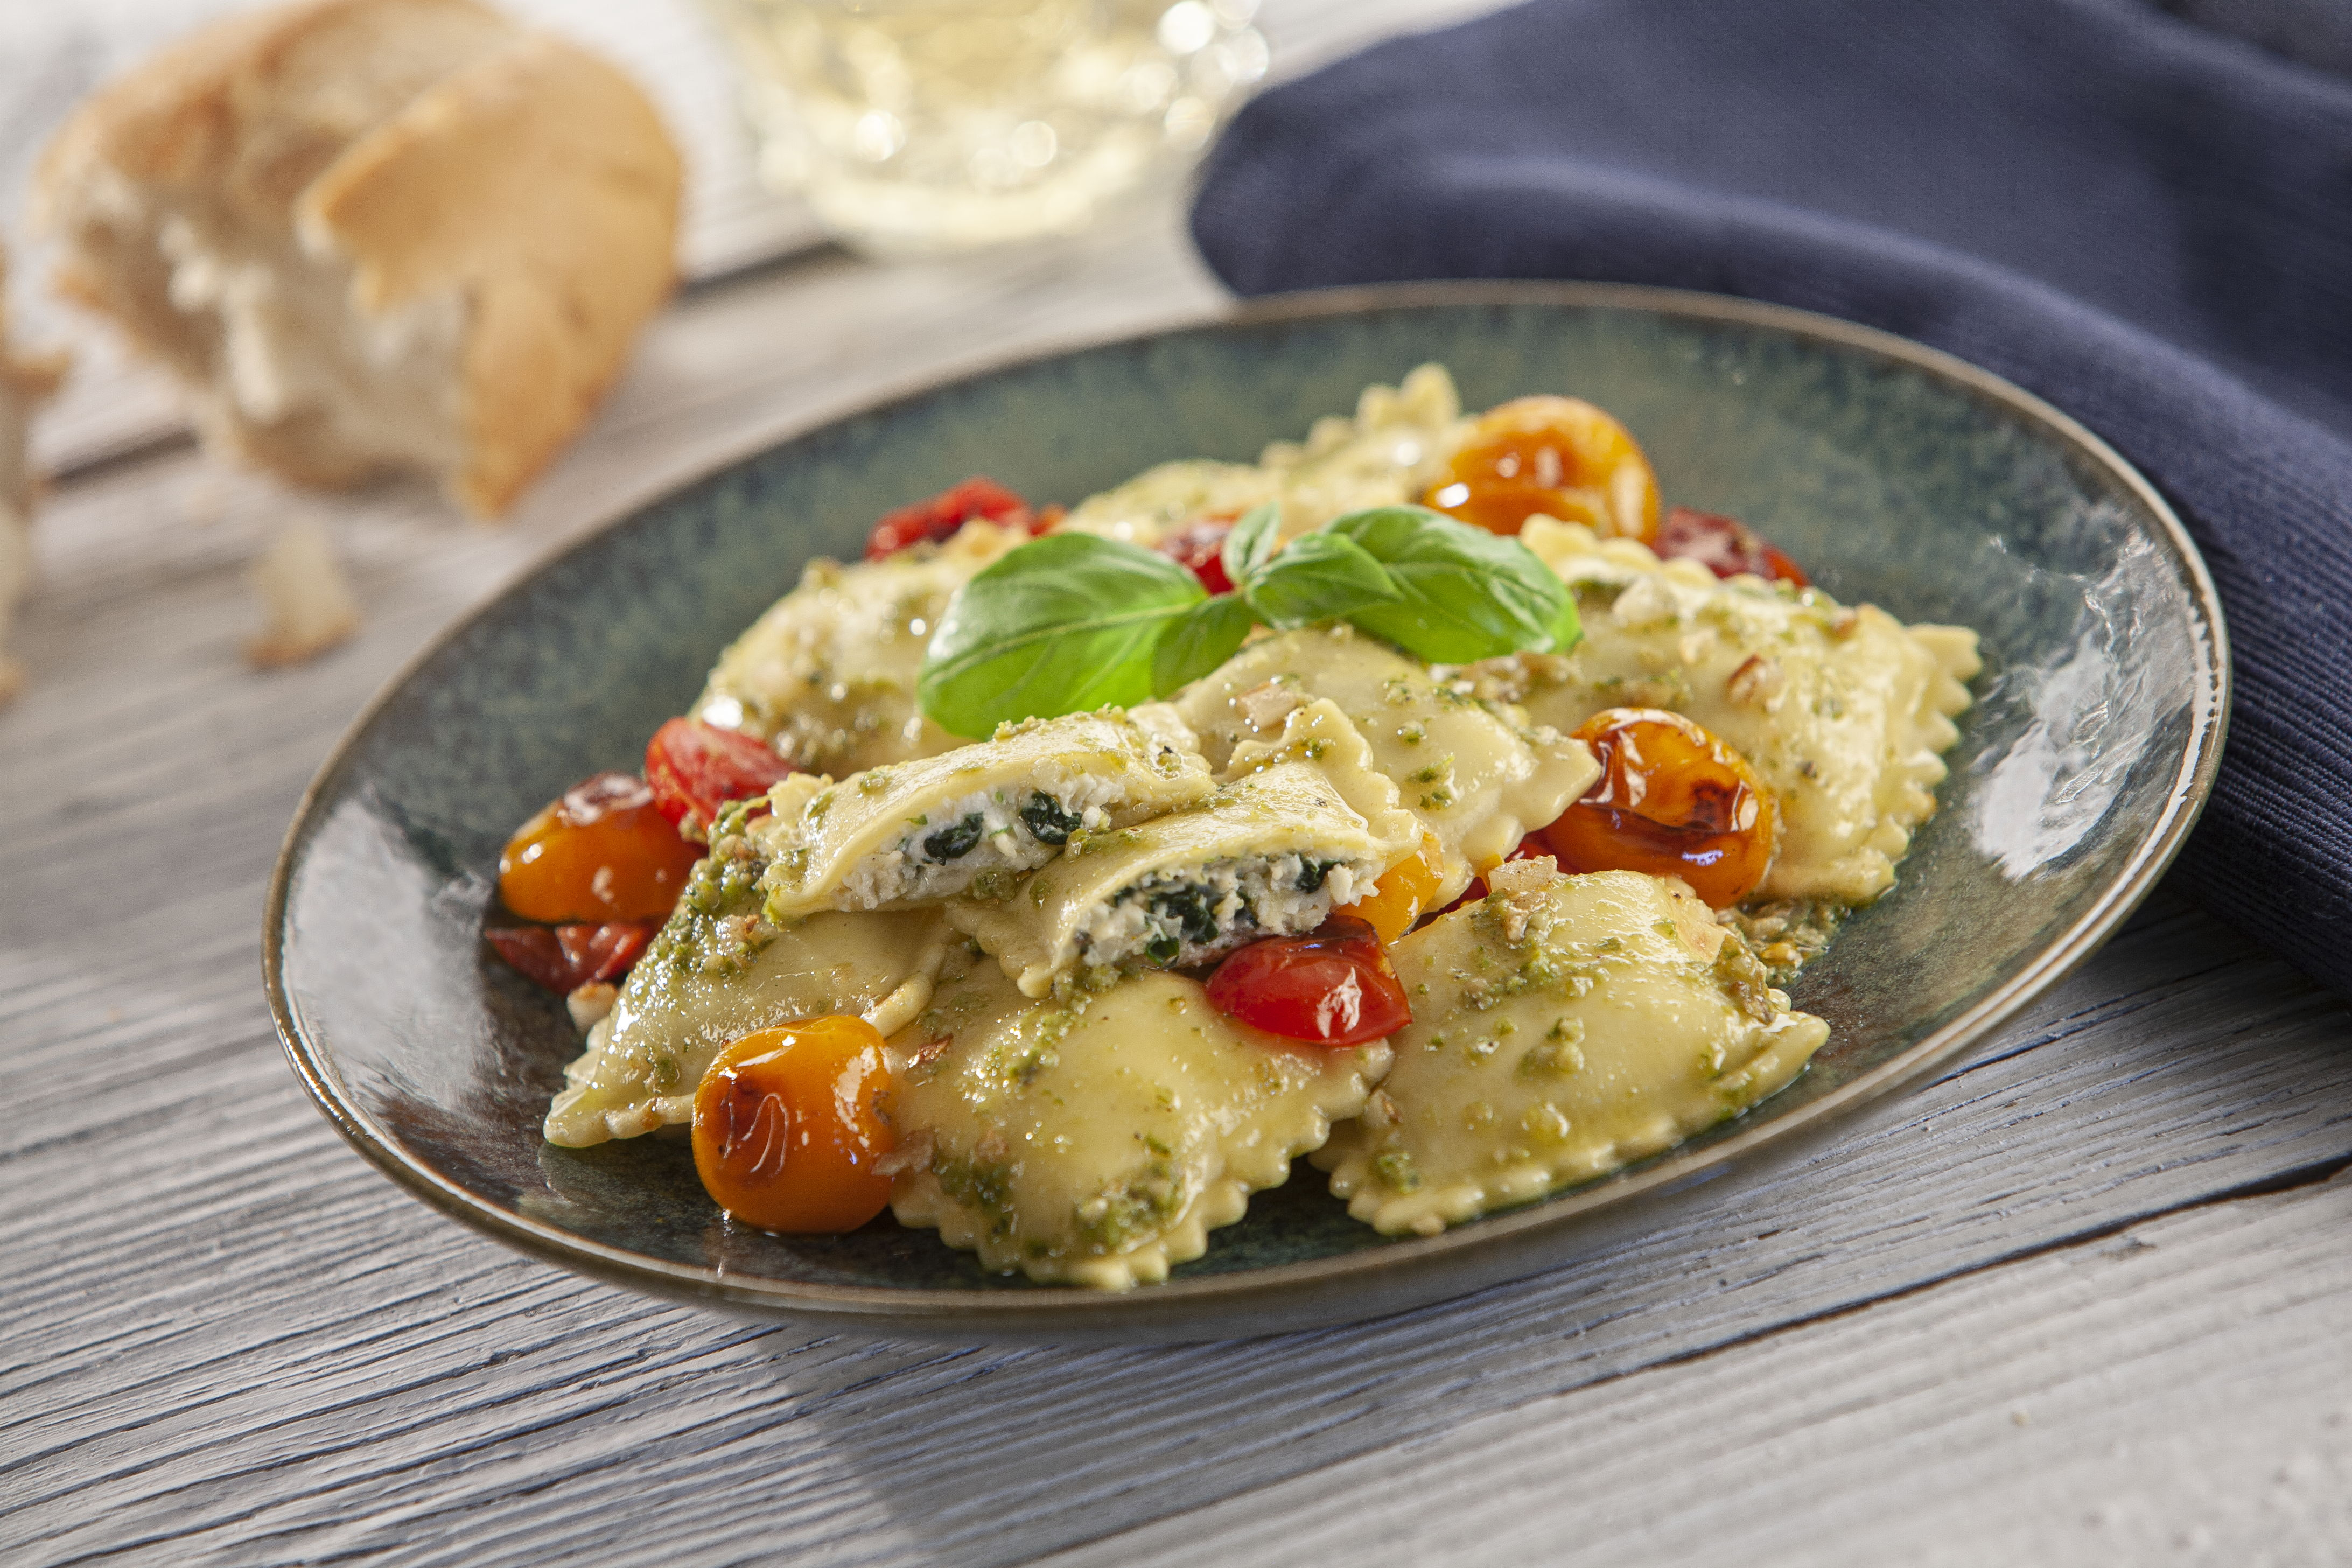 Spinach and Cheese Ravioli with Pesto and Cherry Tomatoes